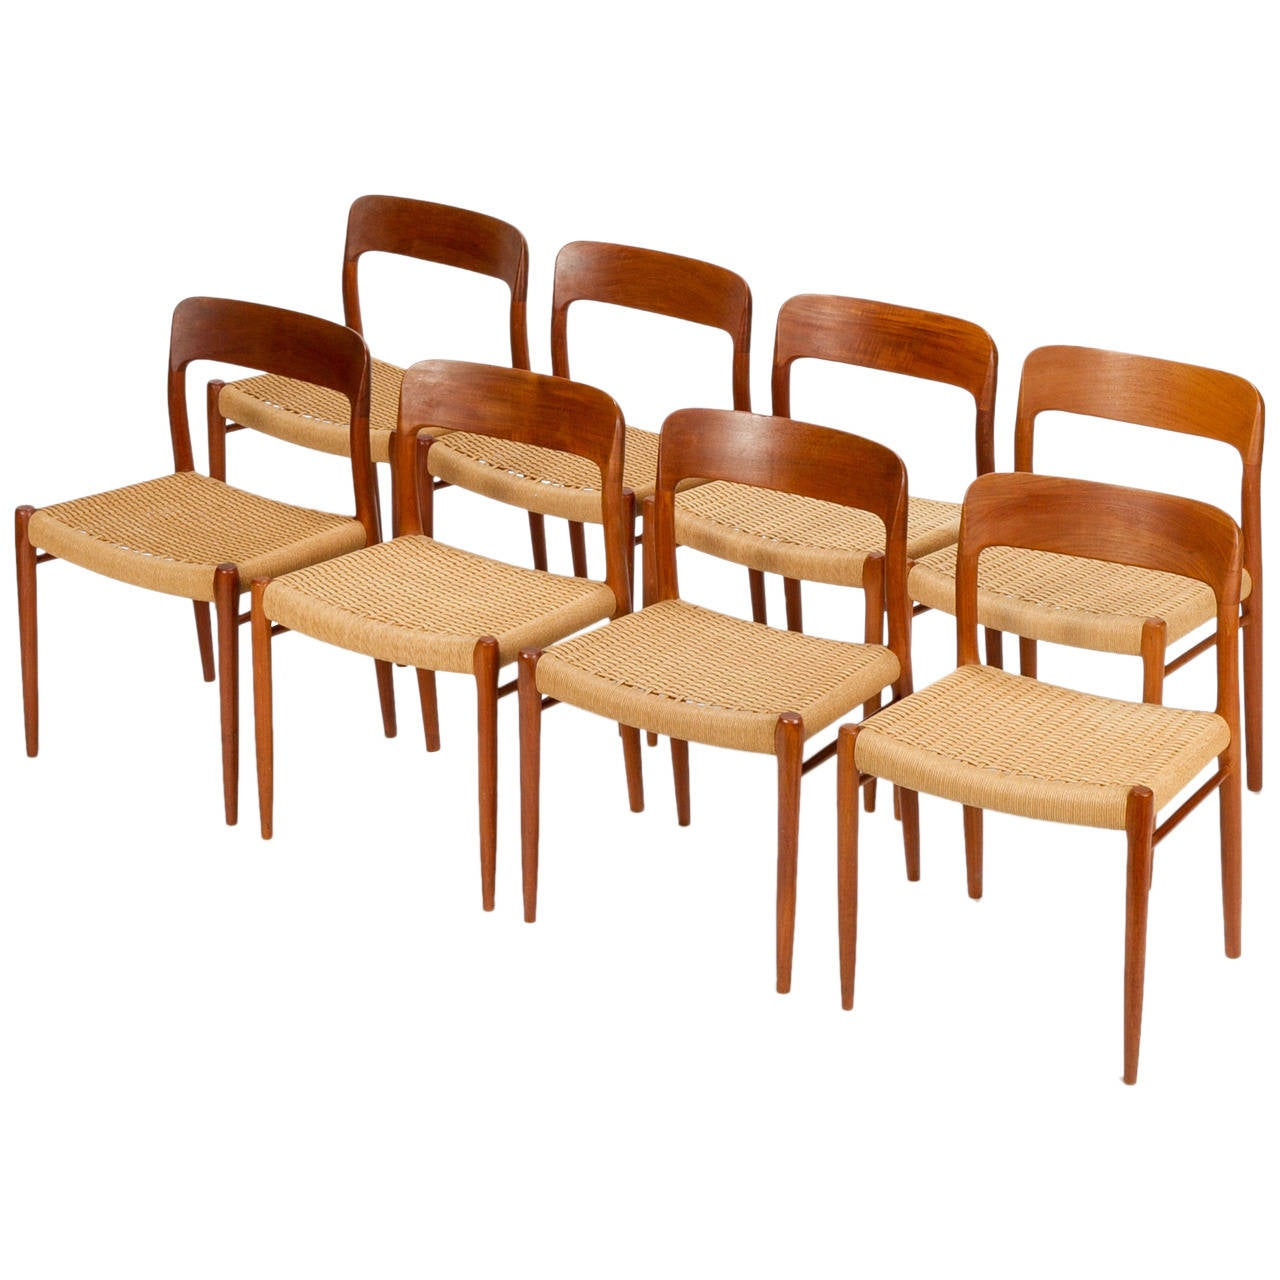 Eight Danish Dining Chairs Model 75 By Niels Moller In Teak And Papercord For